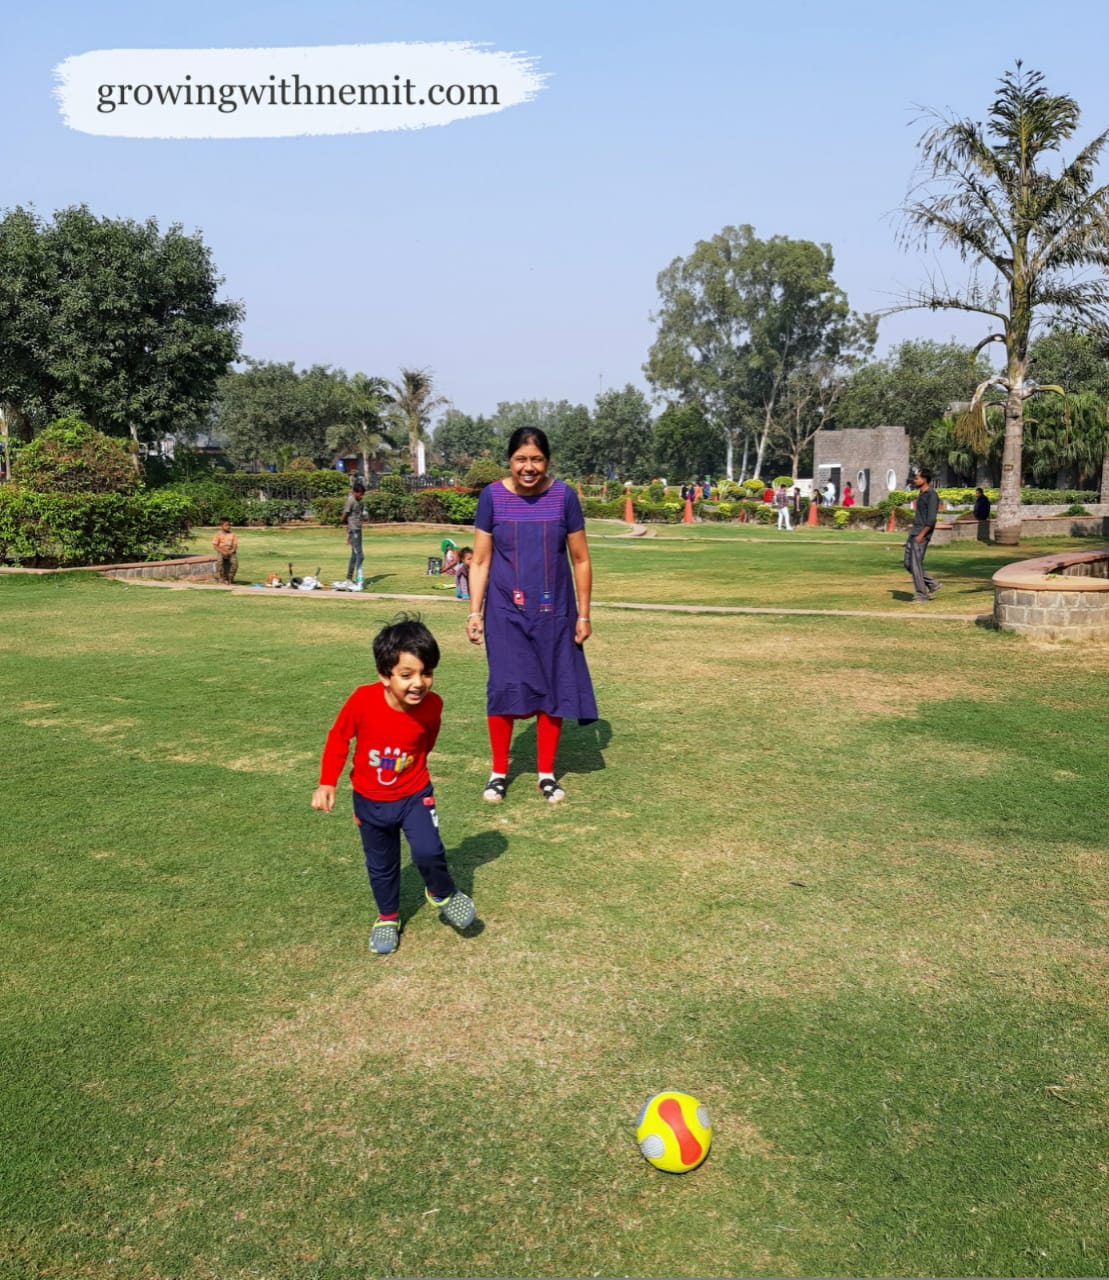 Plan a Picnic Day with your family at Indraprastha Park, Delhi